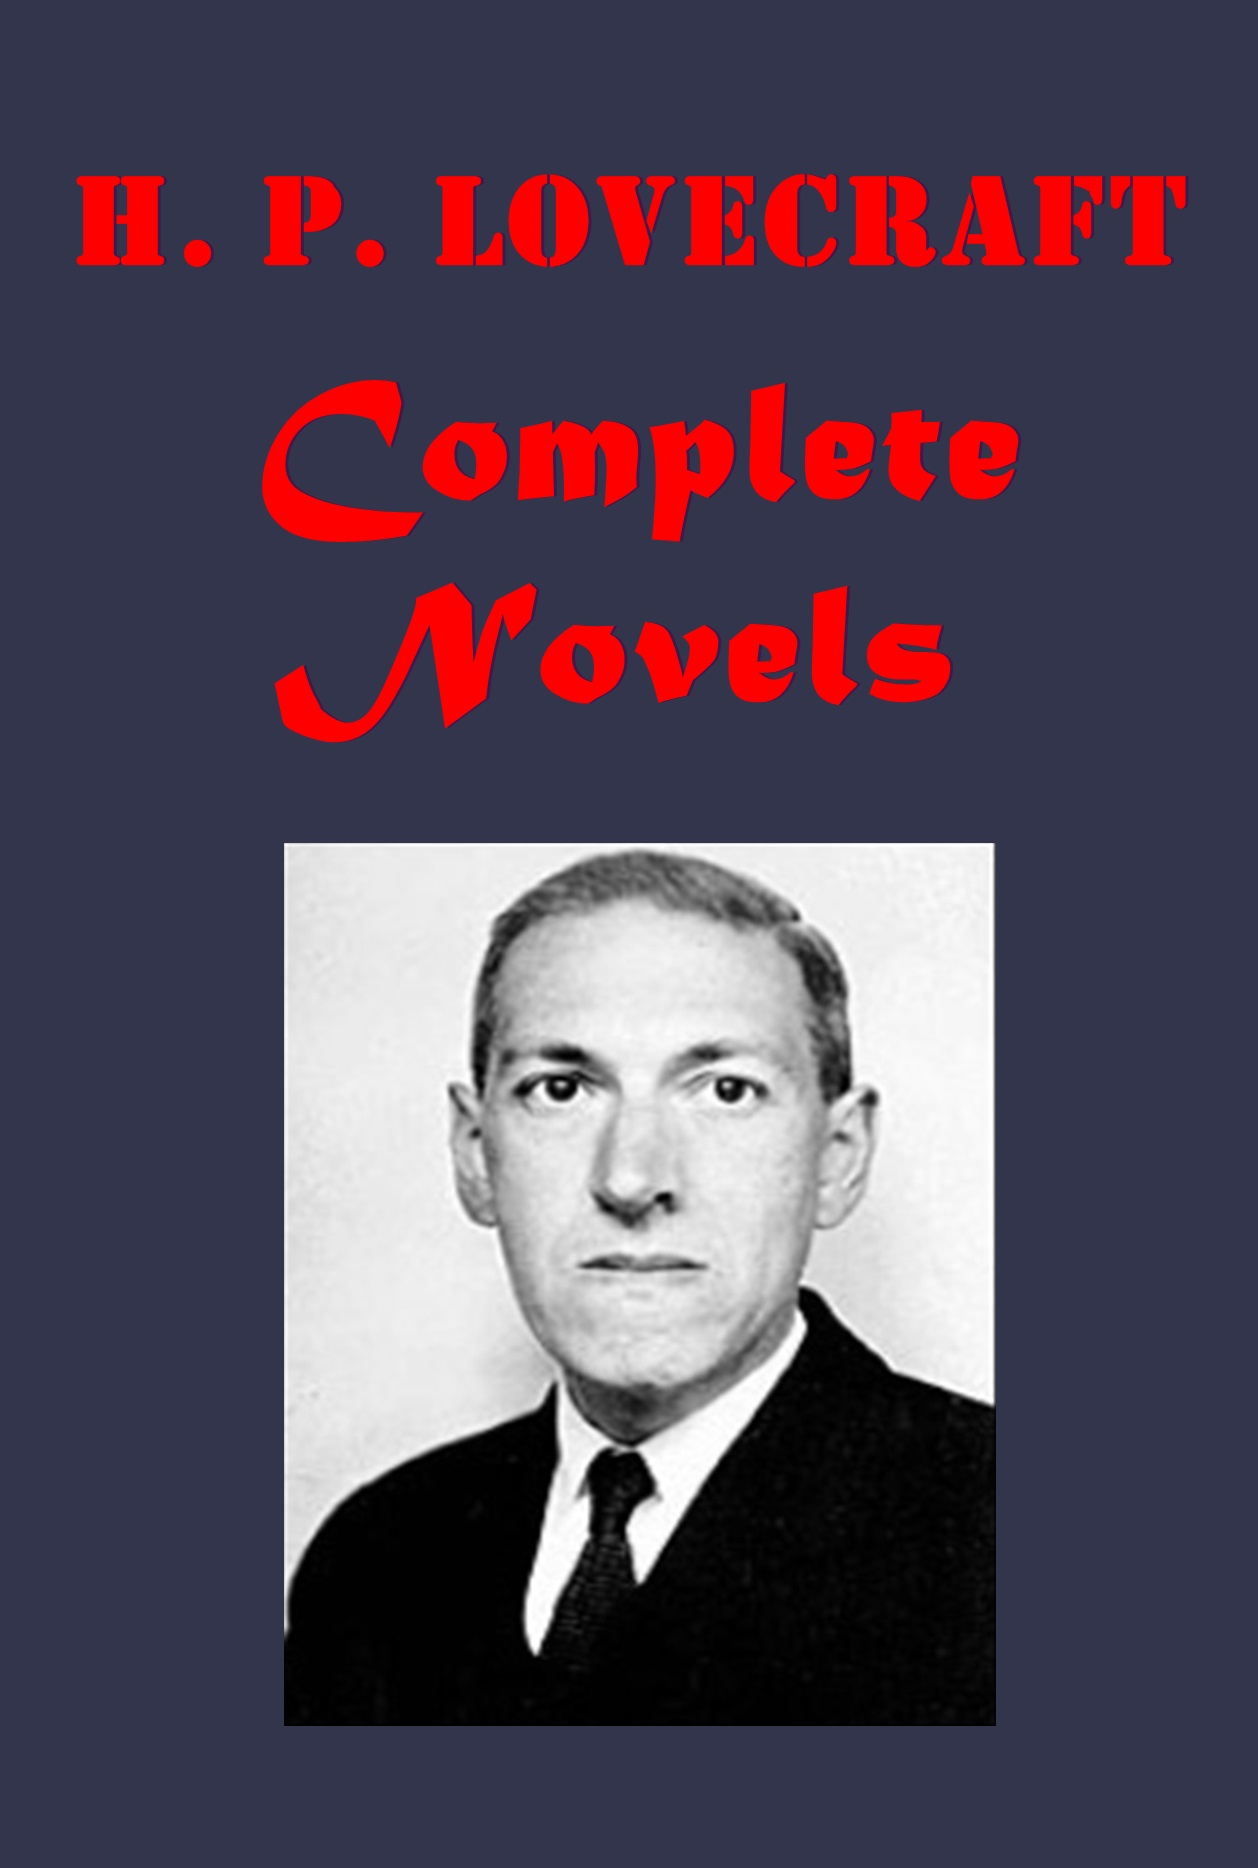 New critical essays on h.p. lovecraft